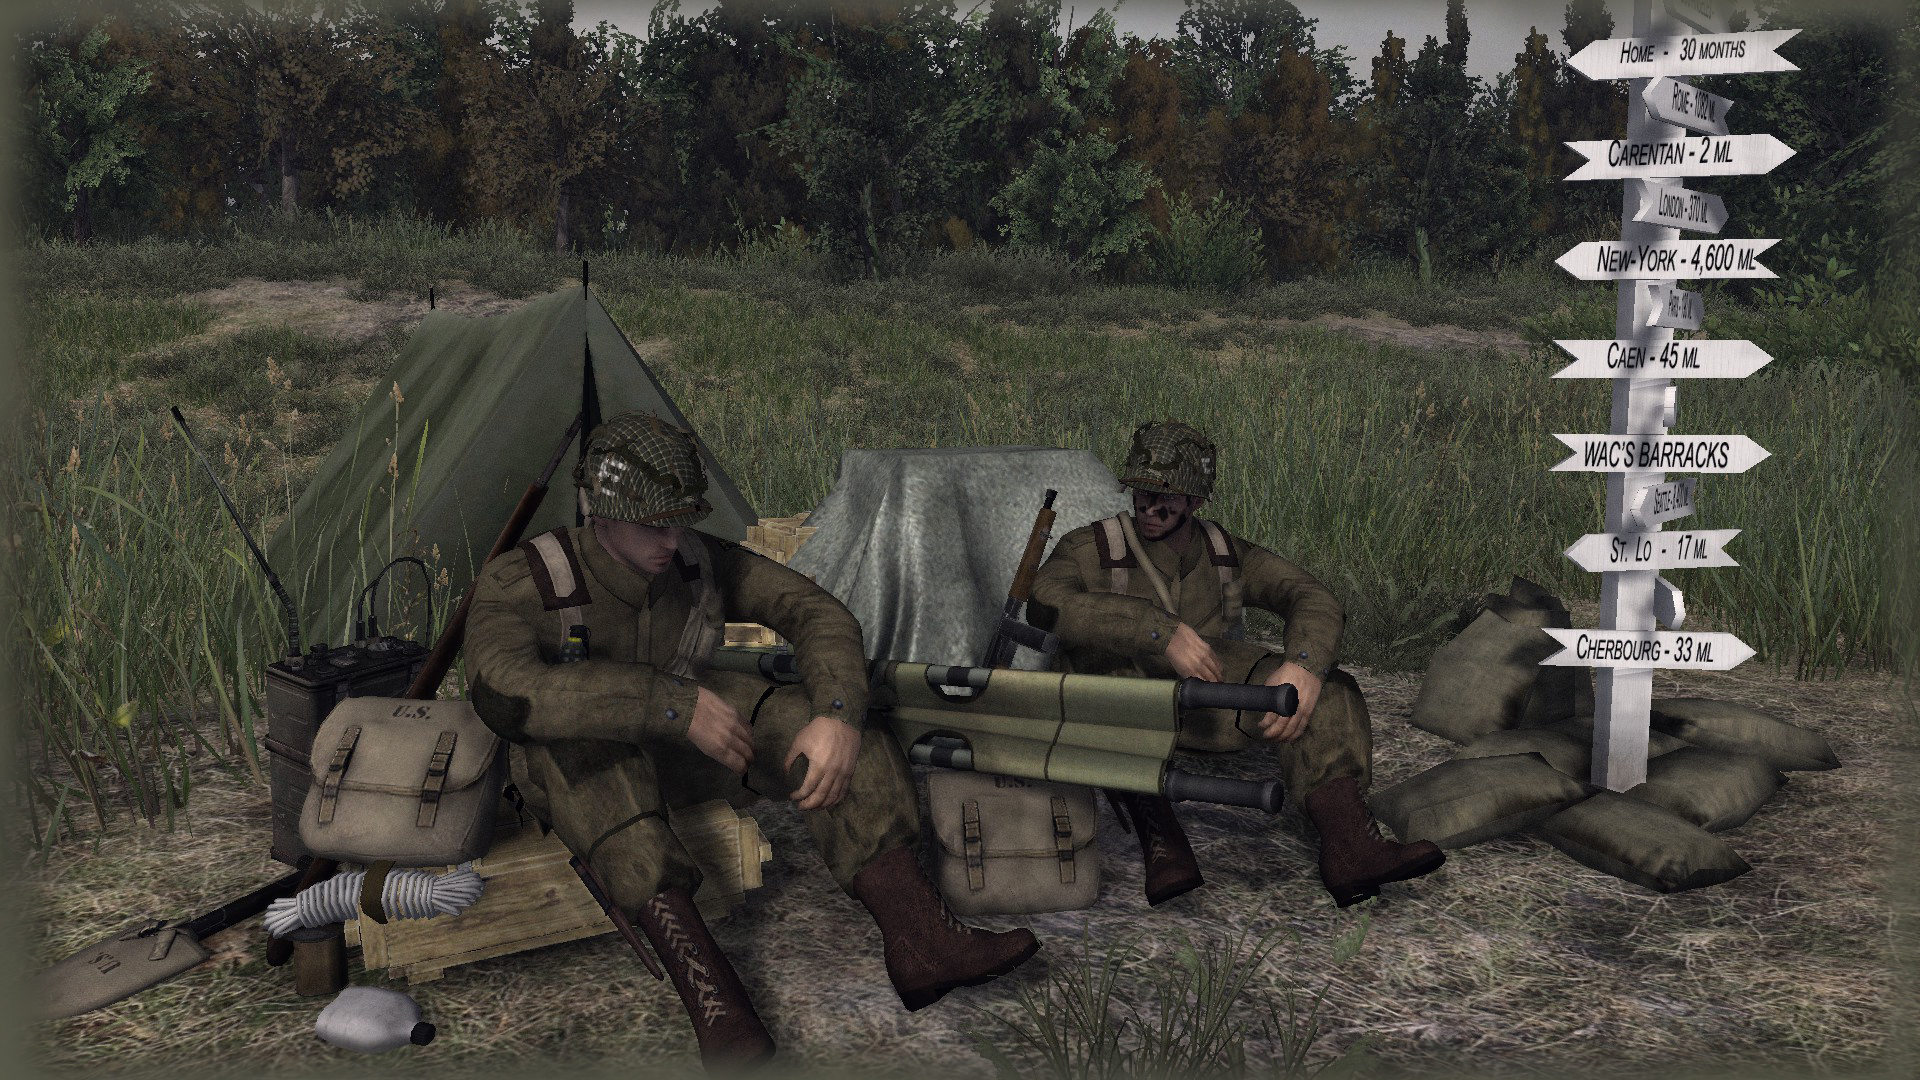 Comunidade Steam Captura De Ecra Two Gi S From Charlie Company 326th Airborne Engineer Battalion Of The 101st Airborne Division Normandy 1944